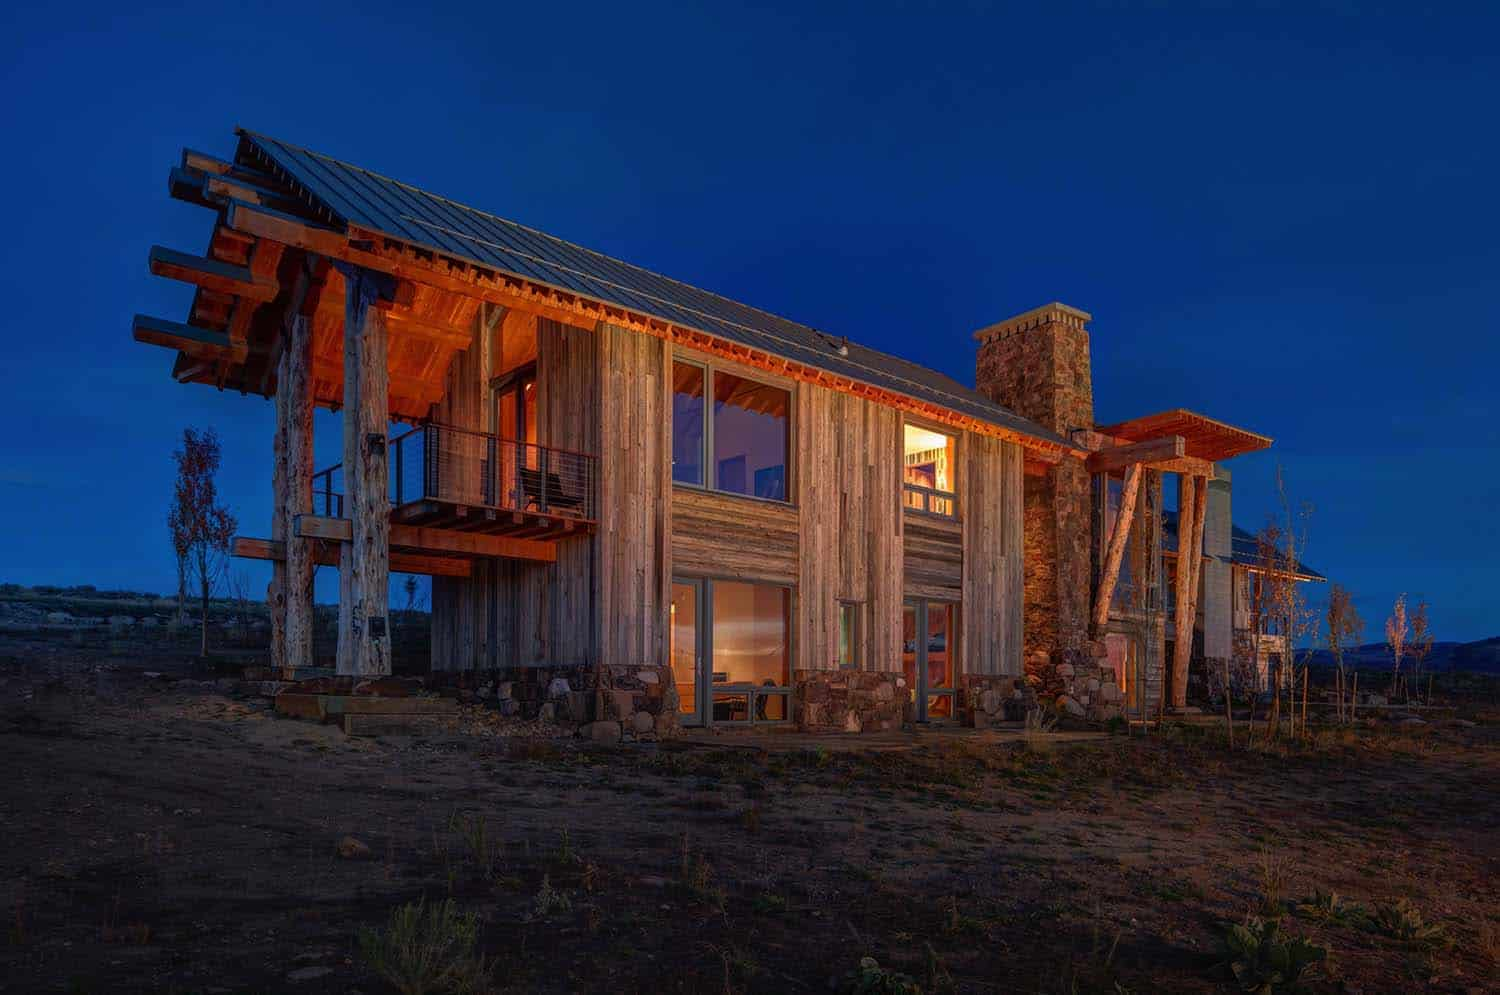 Modern Rustic Log Home-Shubin Donaldson Architects-29-1 Kindesign